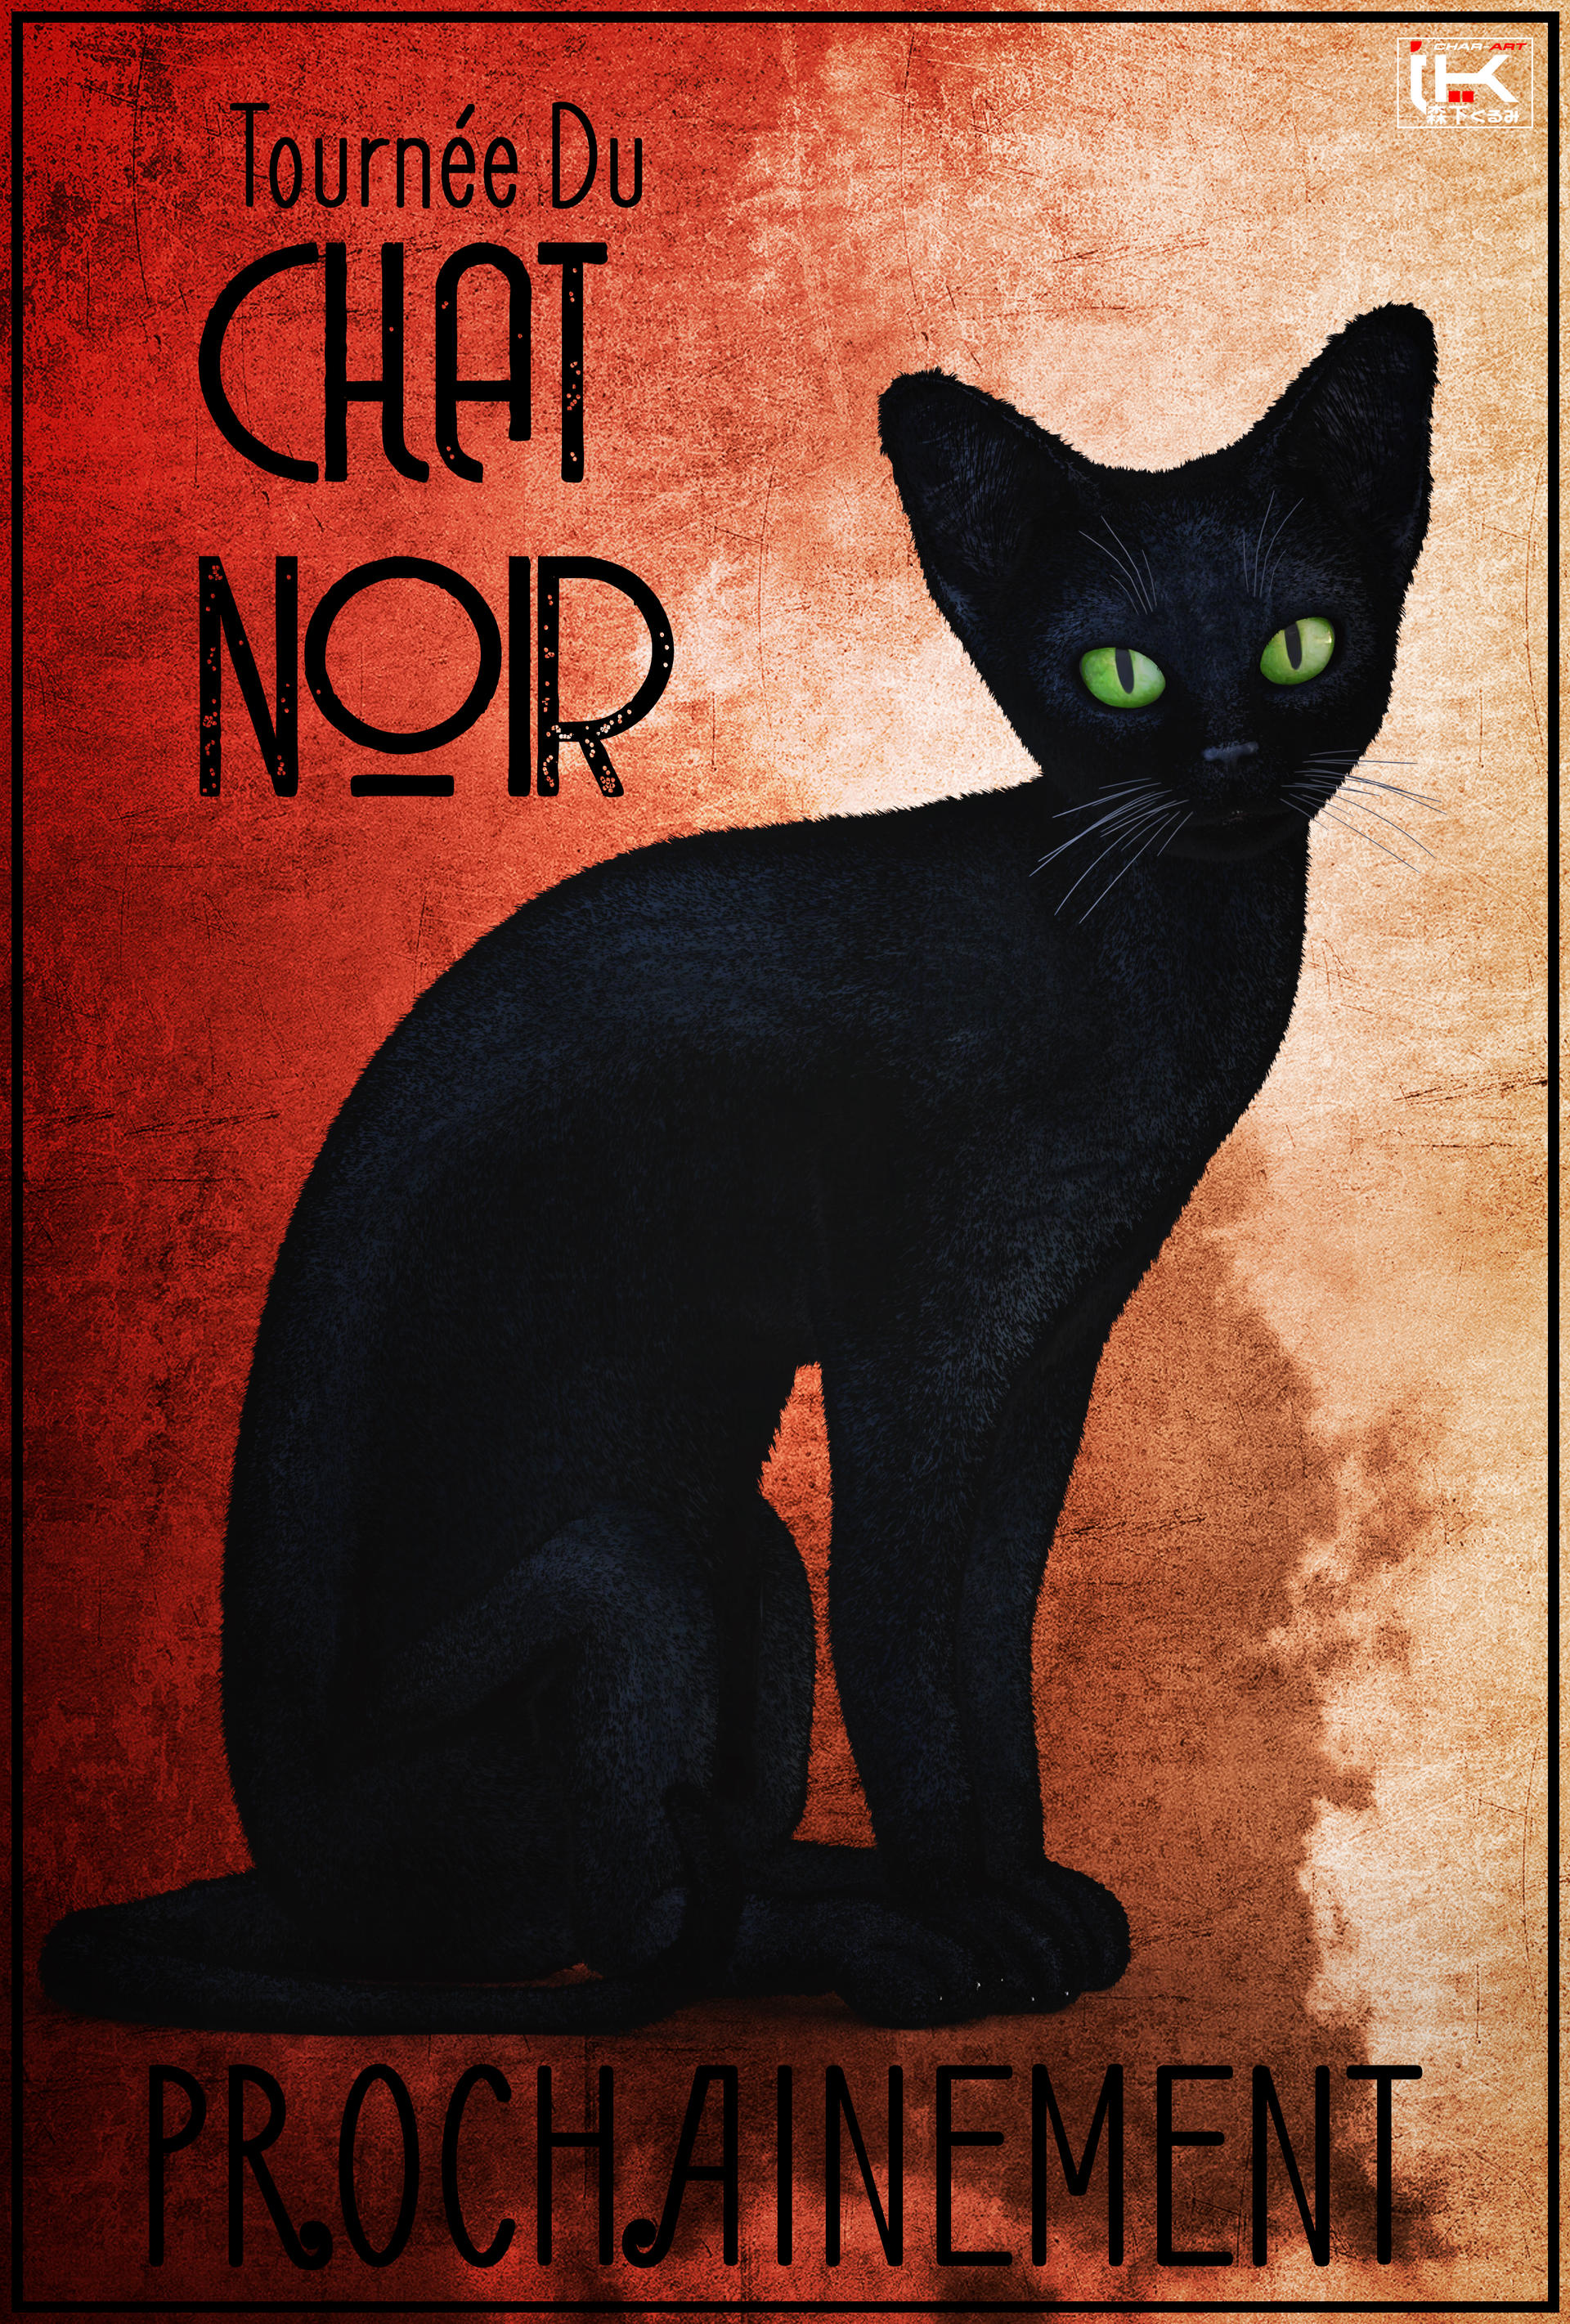 Maus - Le Chat Noir